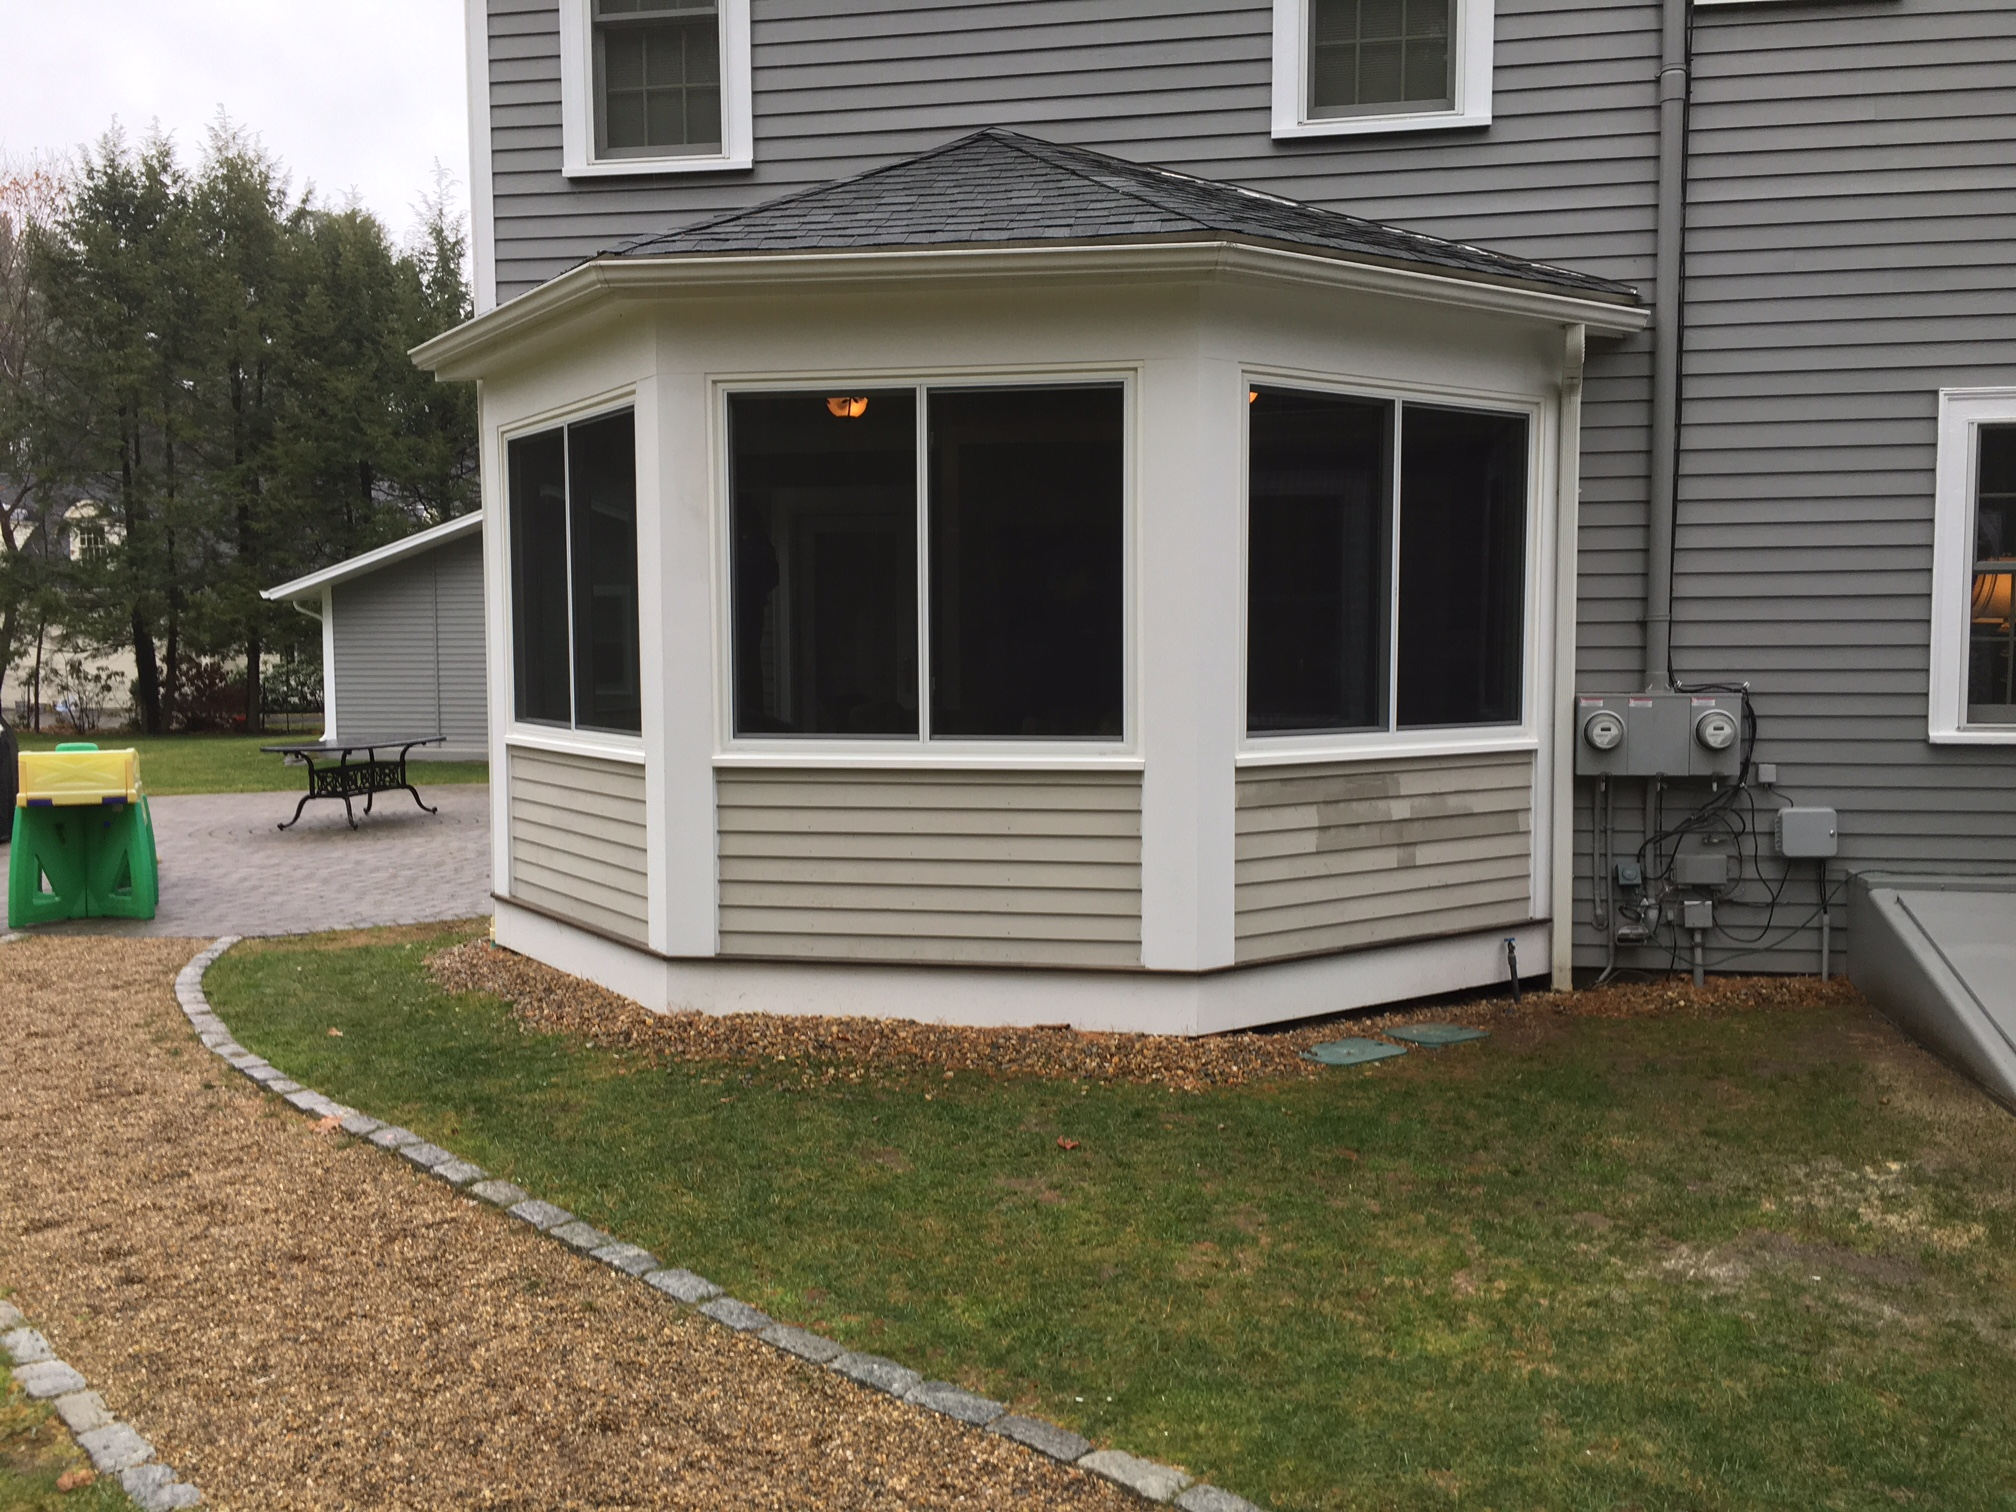 bunk for and porch patio design ideas new enclosed in features blog porches a screened exterior